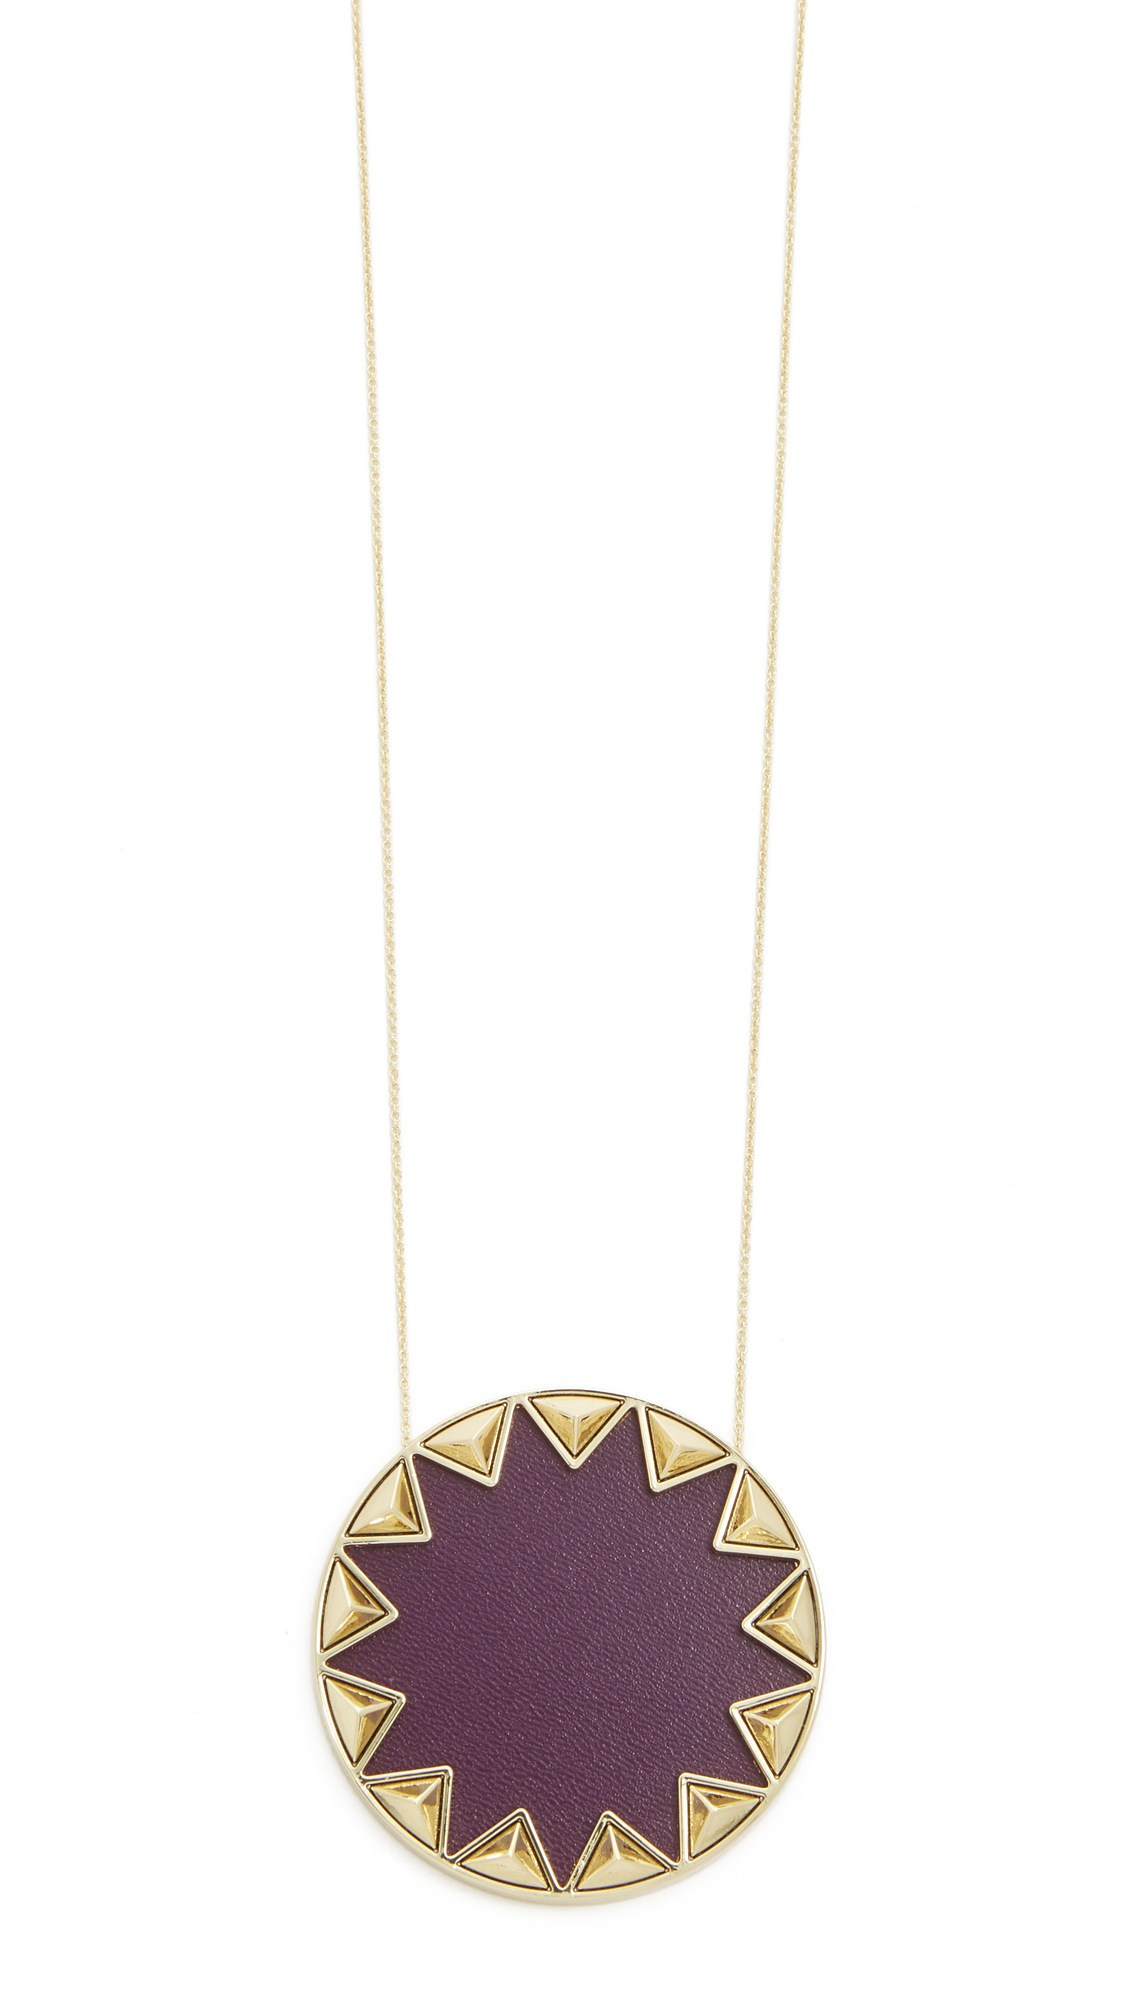 House of Harlow 1960 Leather Sunburst Pyramid Pendant Necklace in Violet/Gold (Purple)